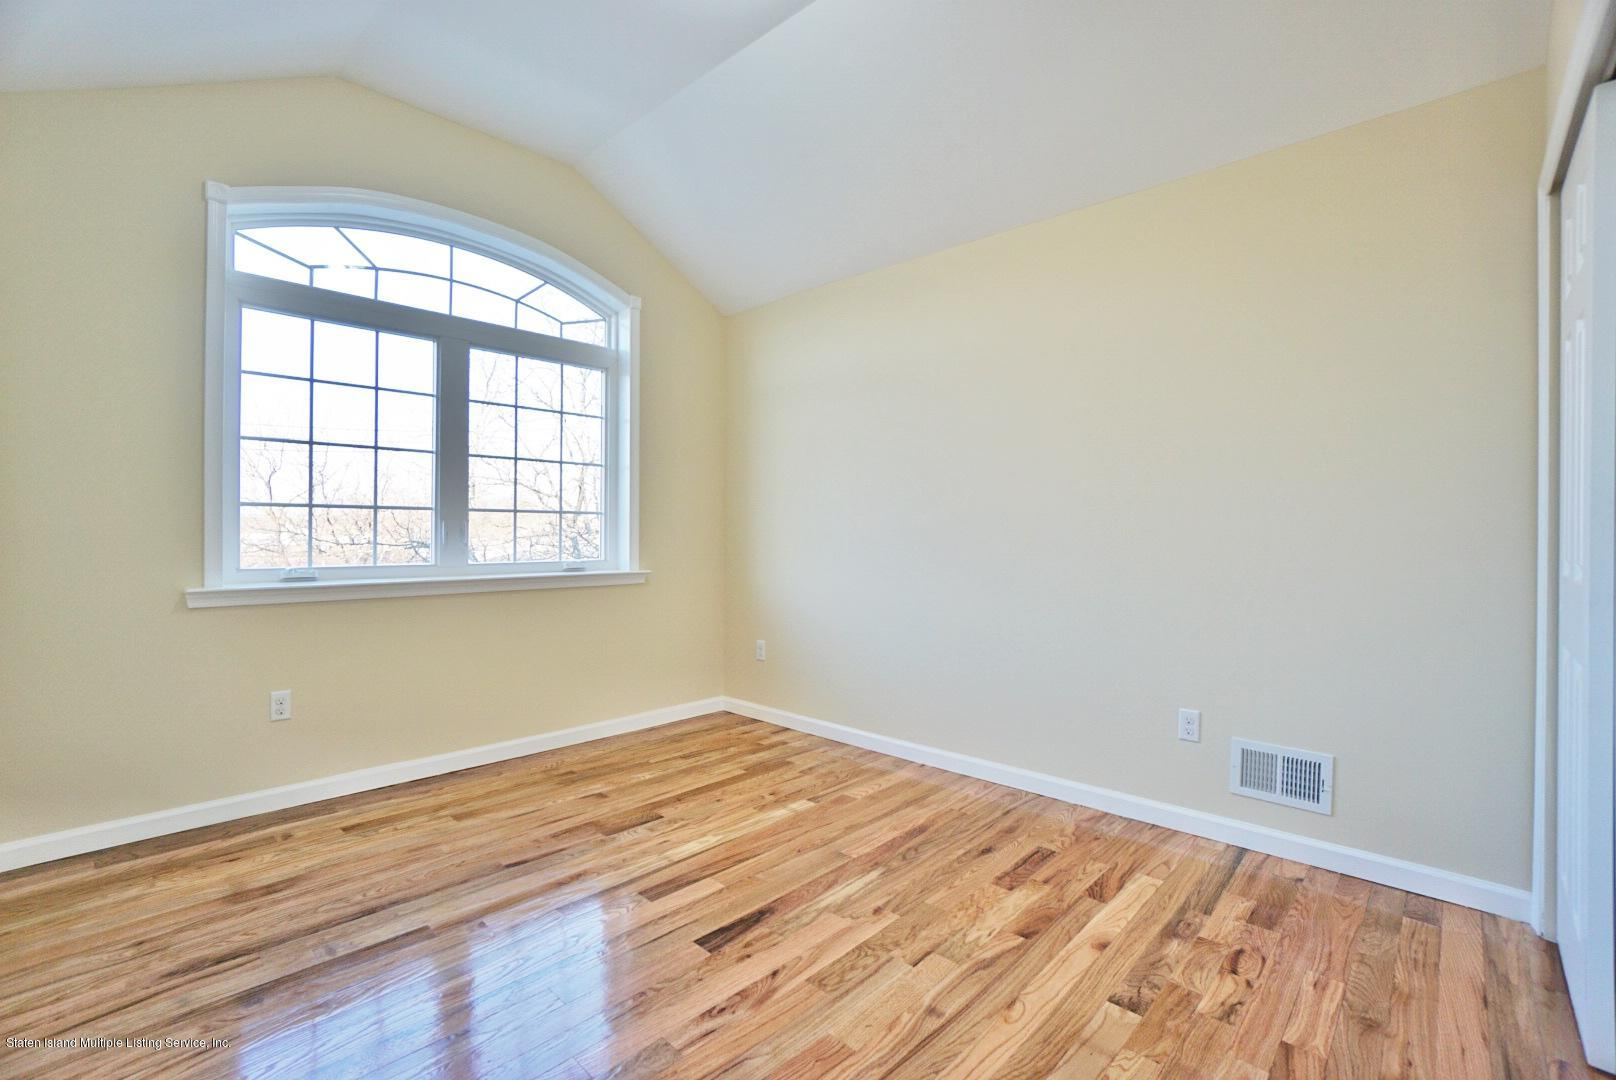 Single Family - Attached 34 Bamberger Lane  Staten Island, NY 10312, MLS-1135521-14